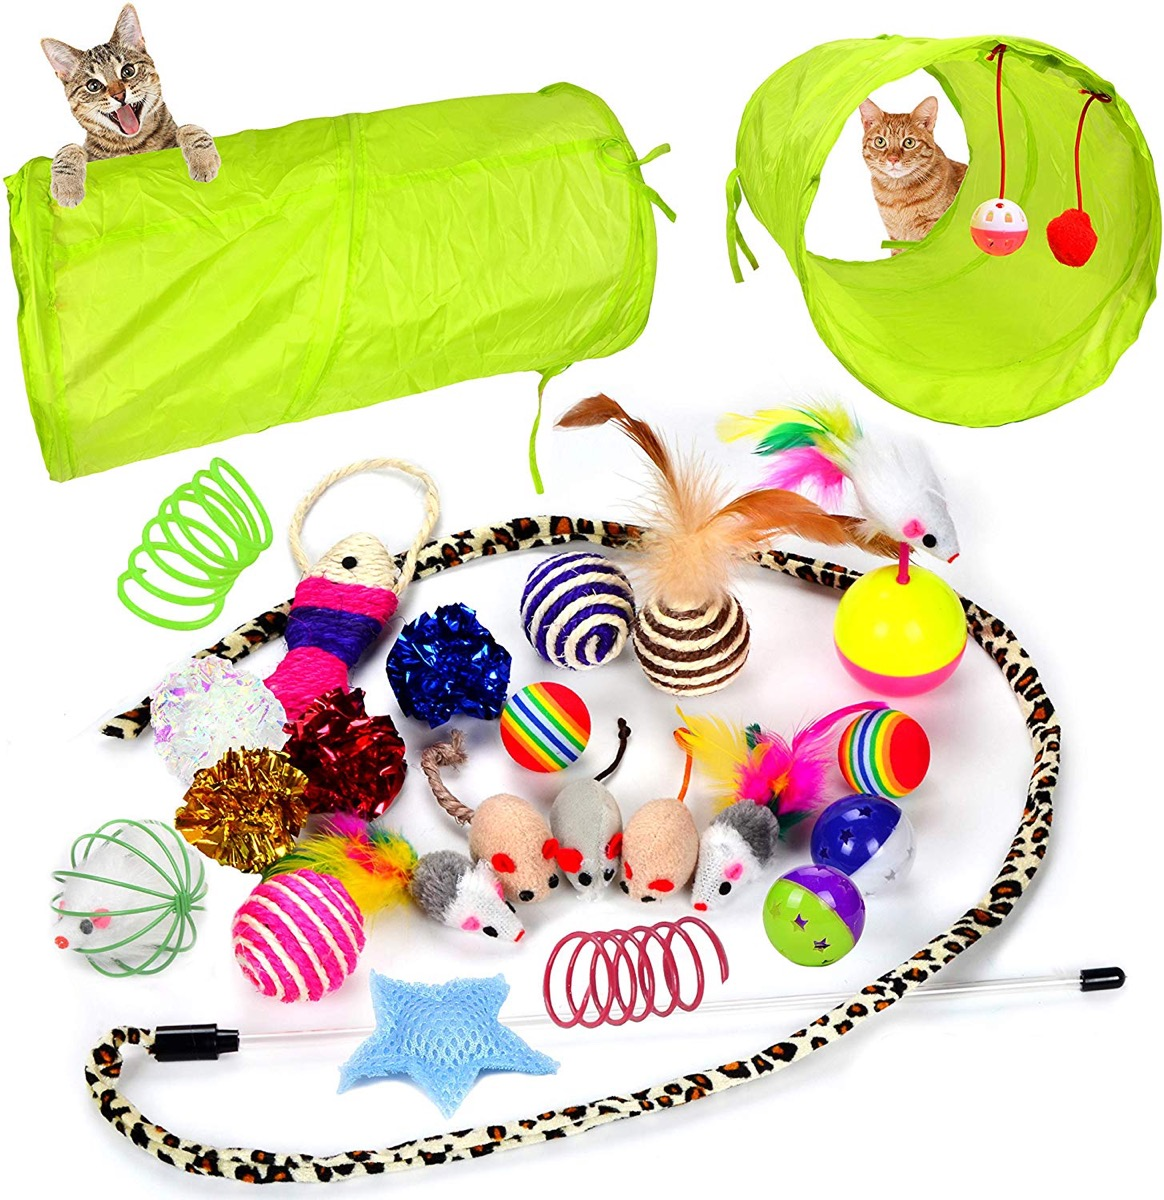 Cat toy collection with tunnel, Amazon pet gifts